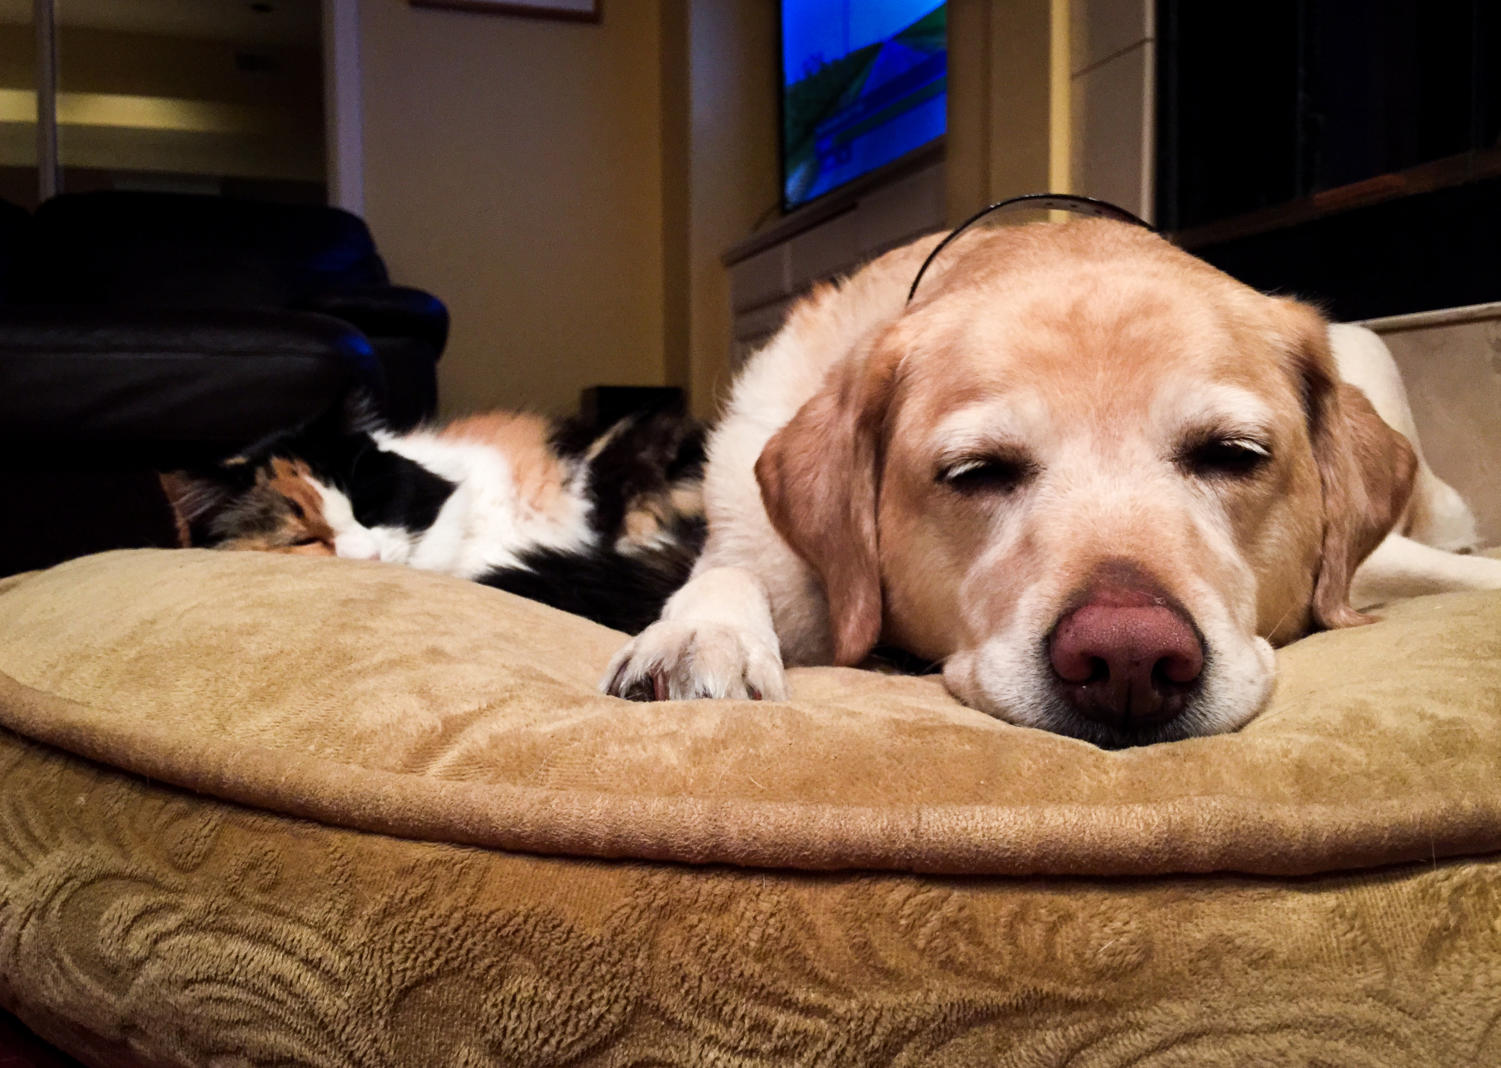 Living with a cat and dog adds a sense of balance to new families.